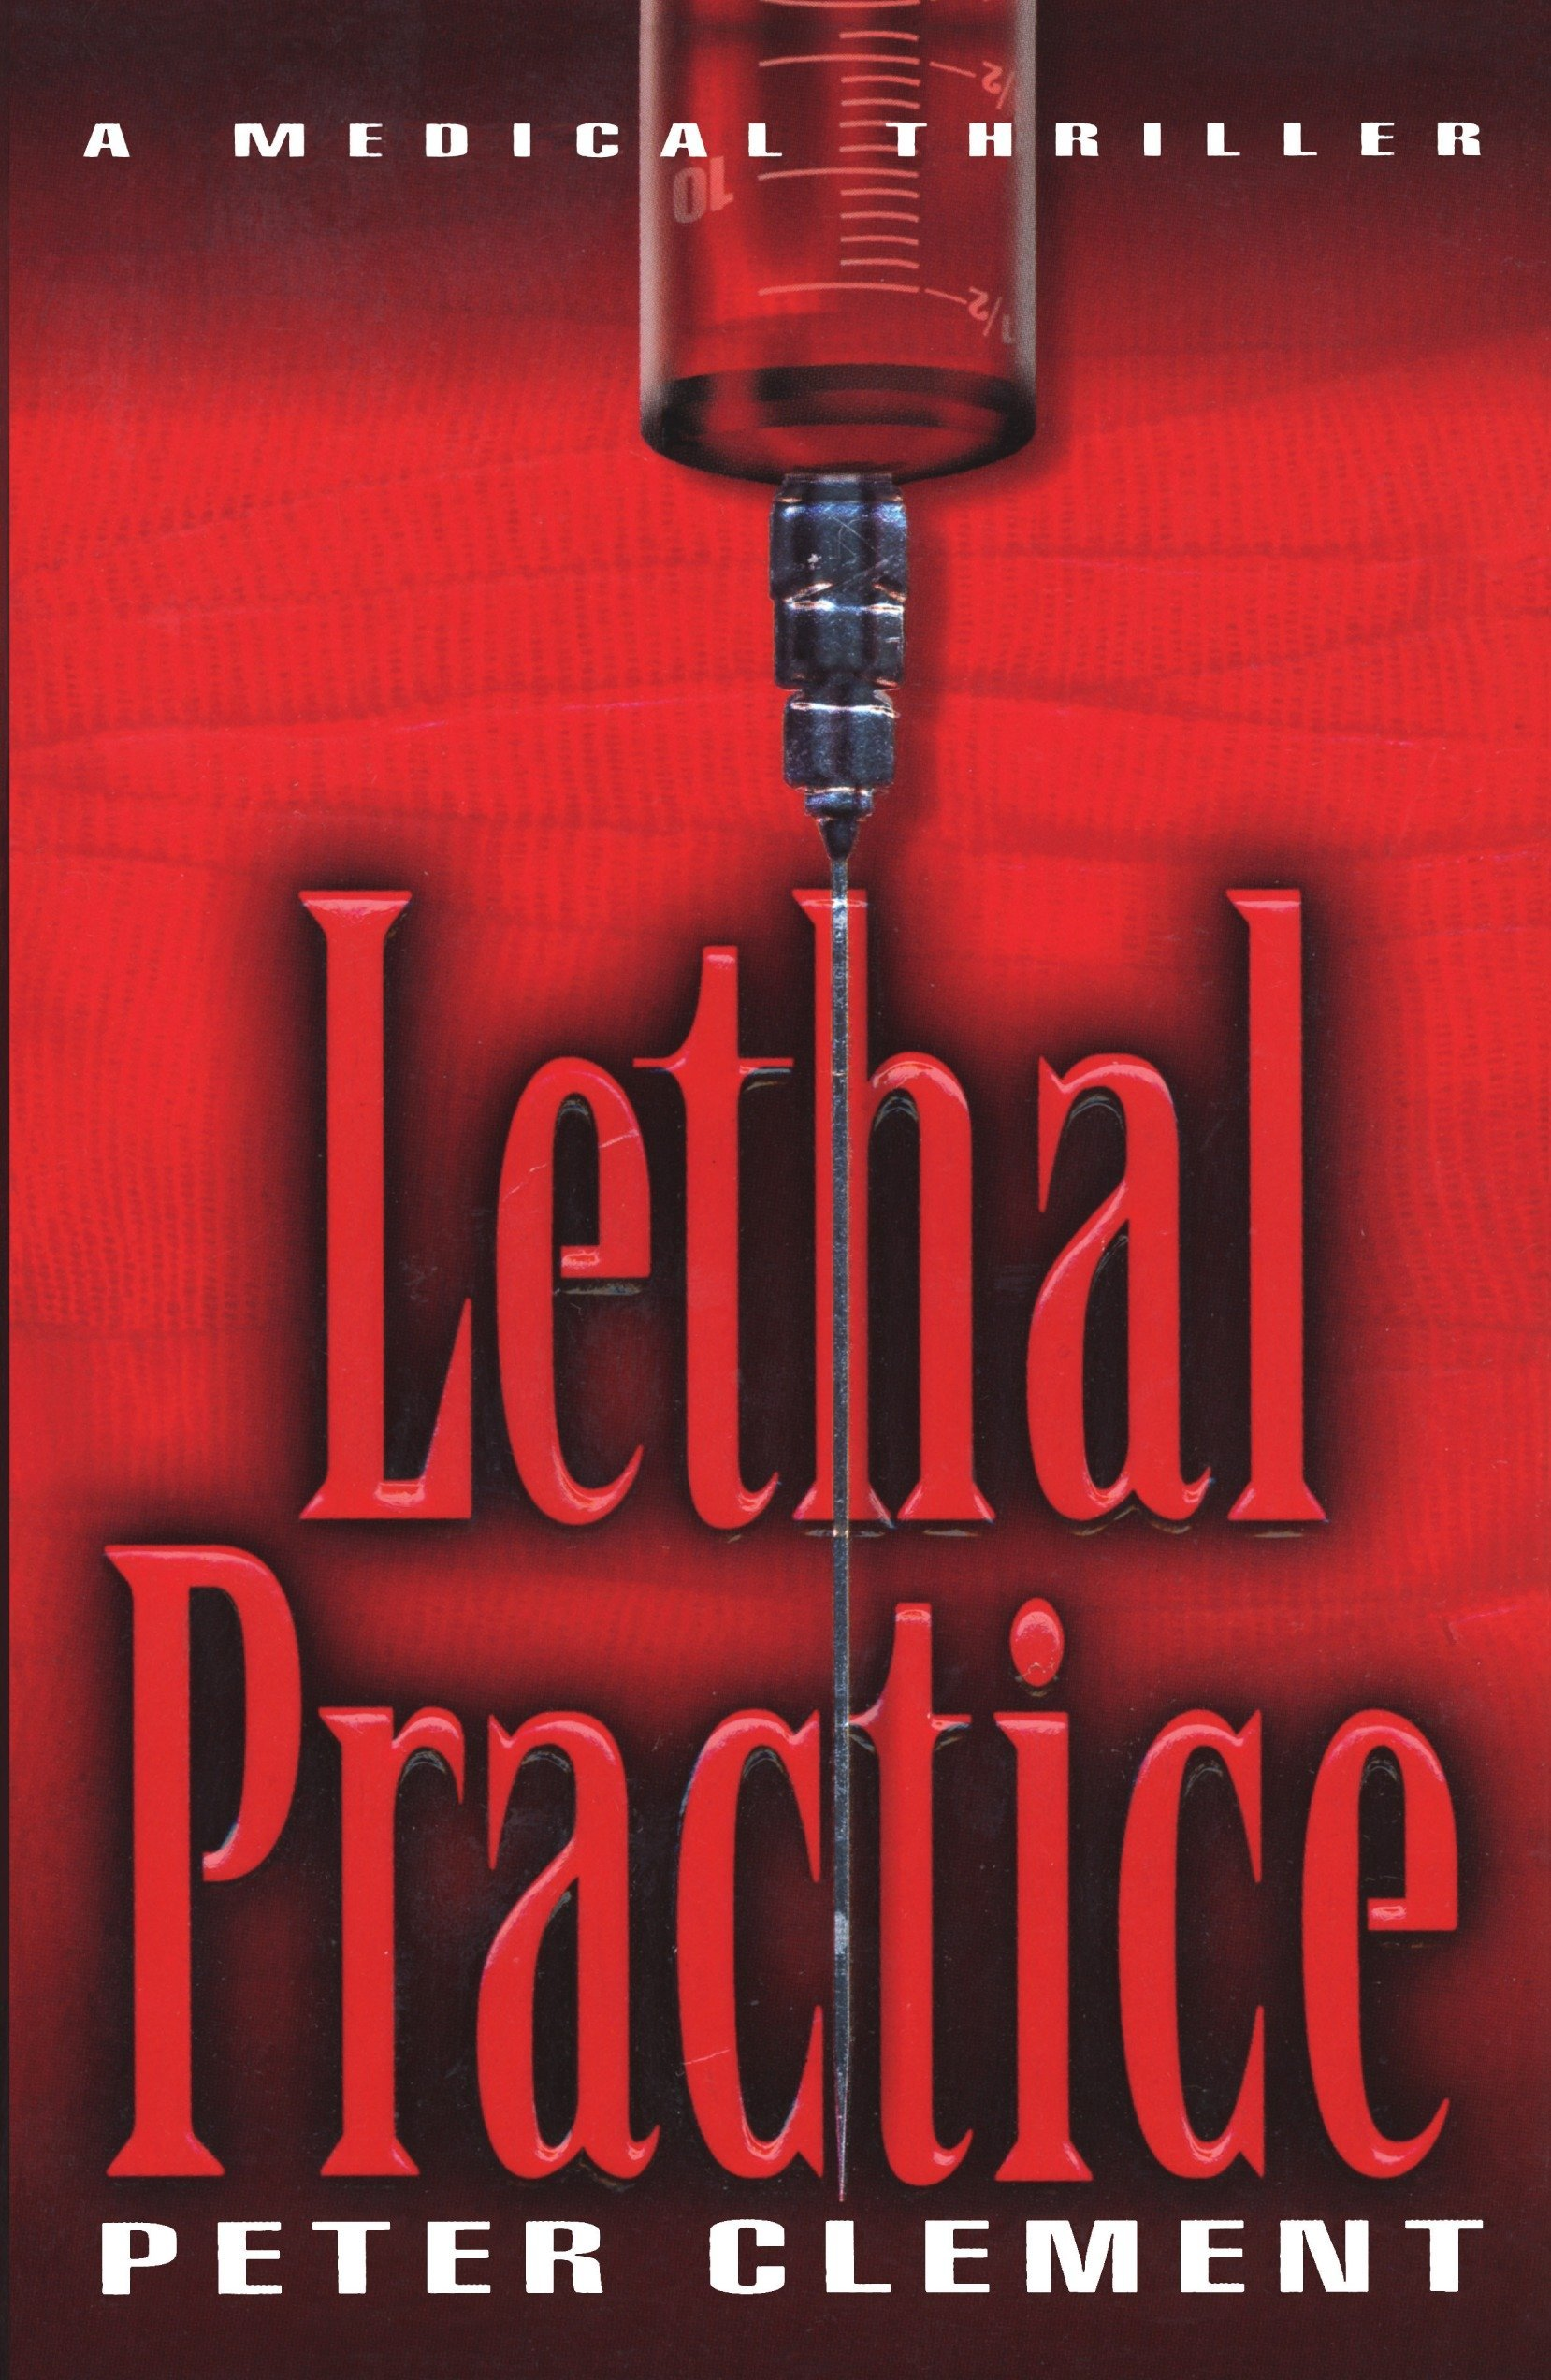 lethal practice clement peter